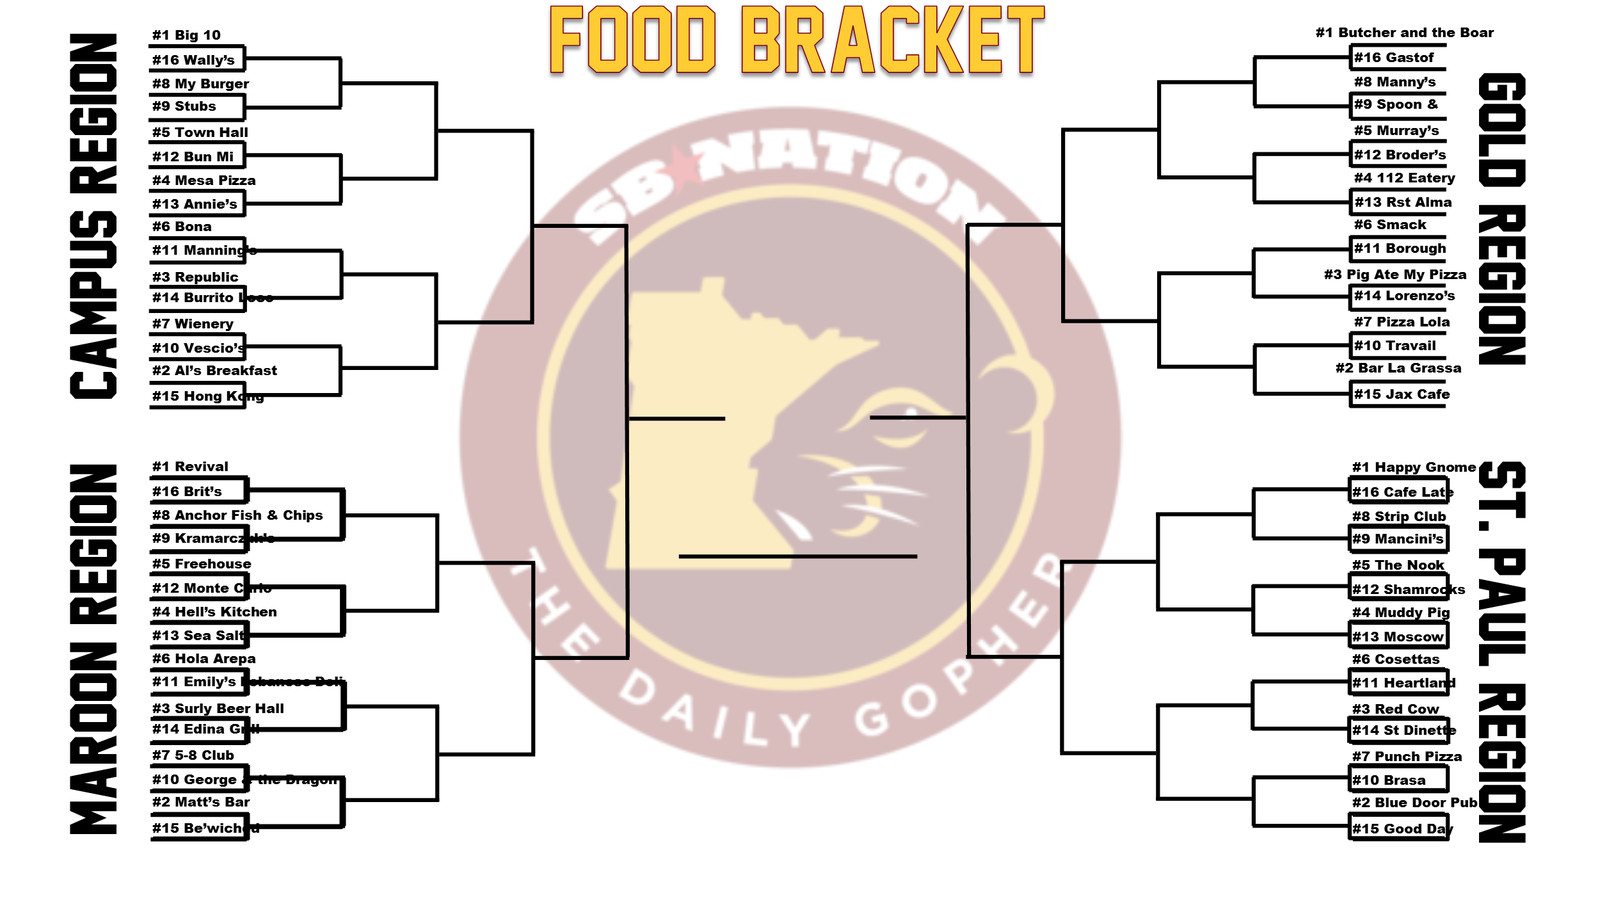 2016_full_bracket_round_of_64_large.0.0